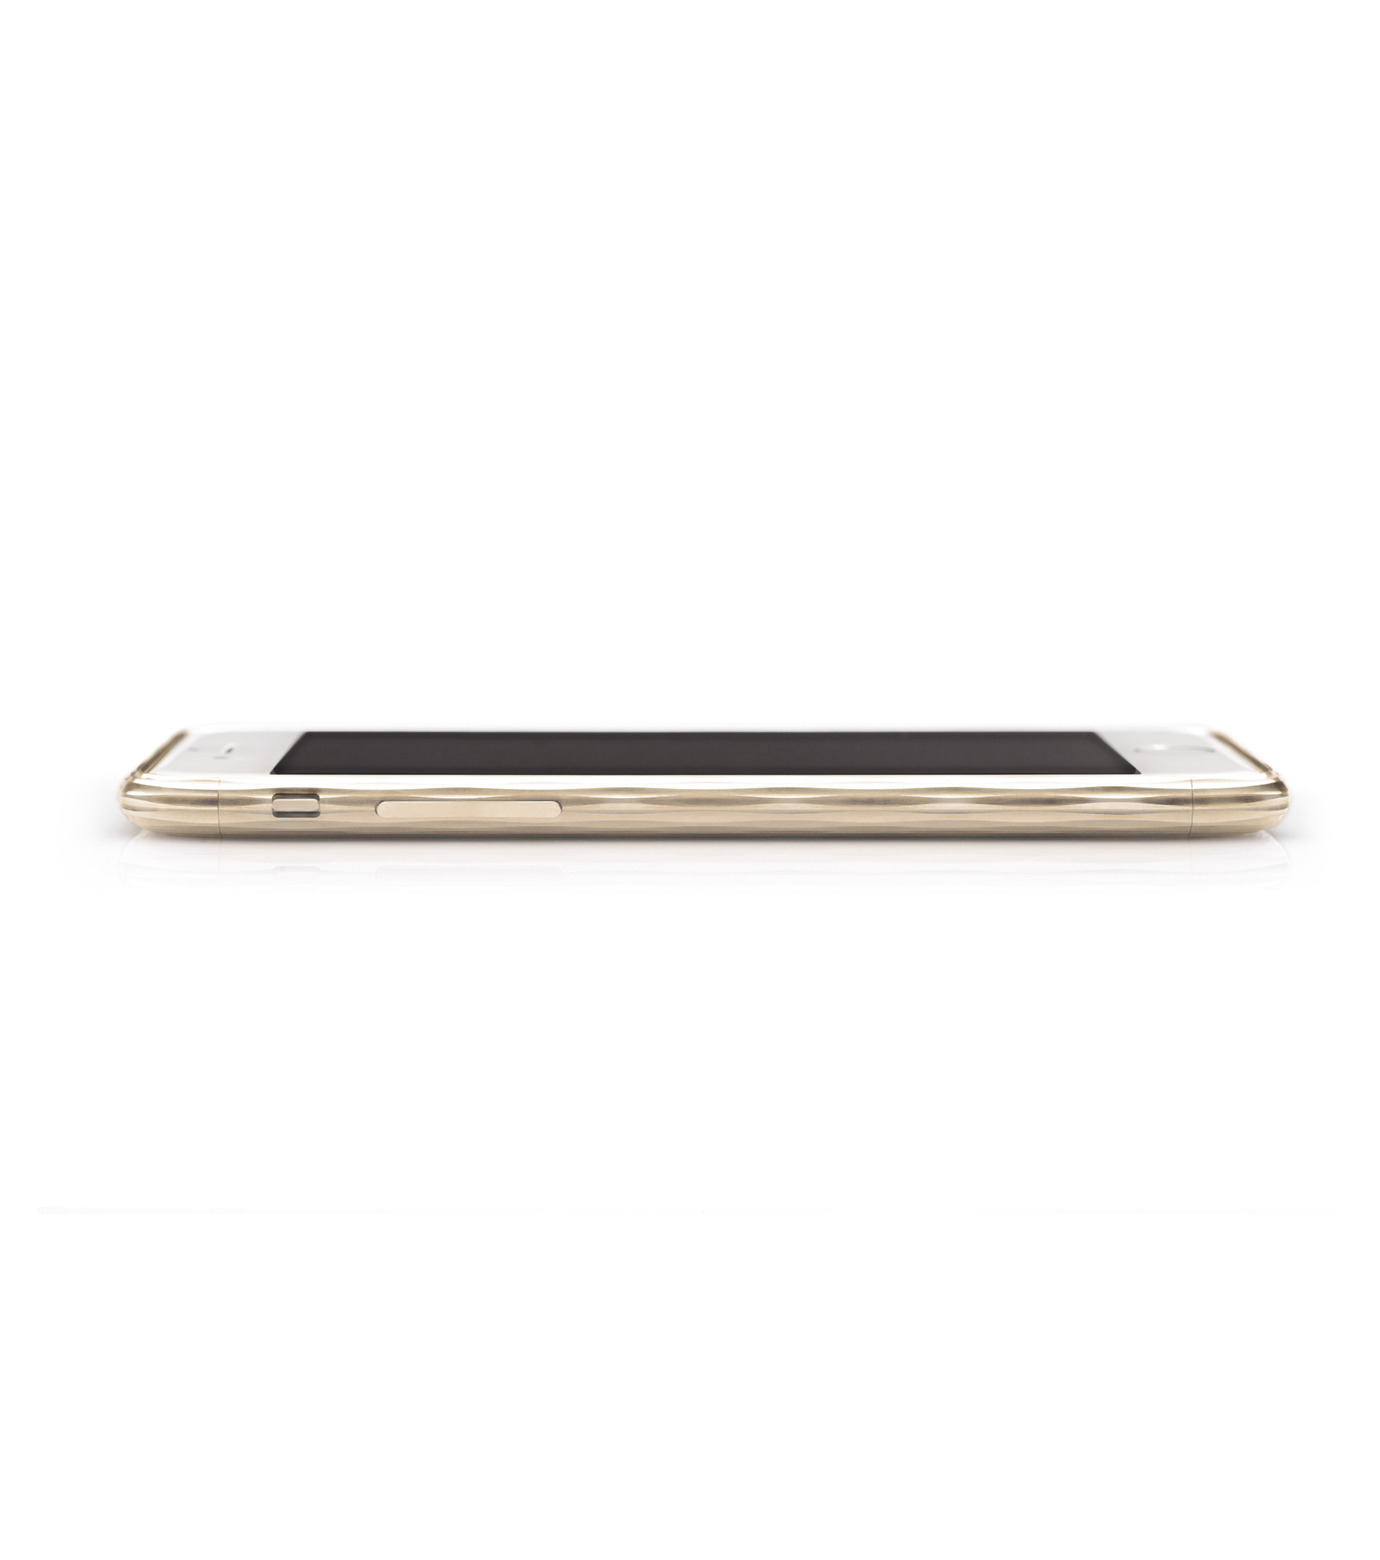 SQUAIR(スクエア)のThe Dimple for iPhone6-GOLD(ケースiphone6/6s/case iphone6/6s)-SQDMP620-GLD-2 拡大詳細画像2